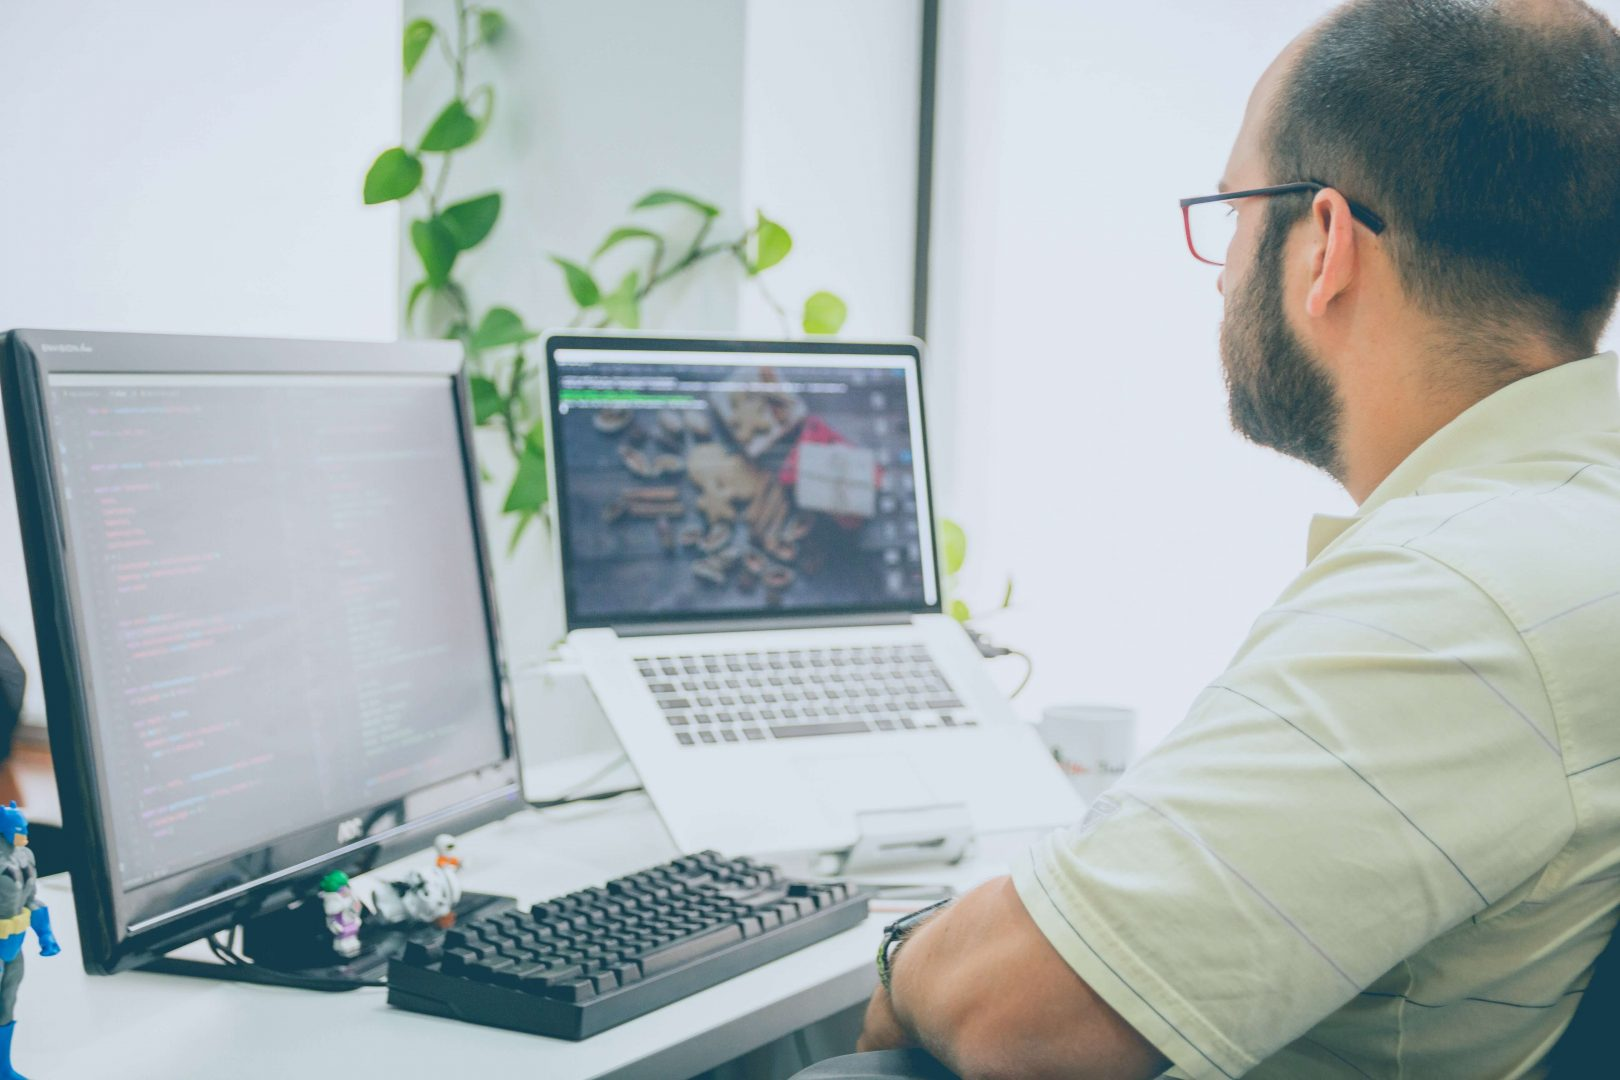 Make it clear that working remotely doesn't mean working all day.